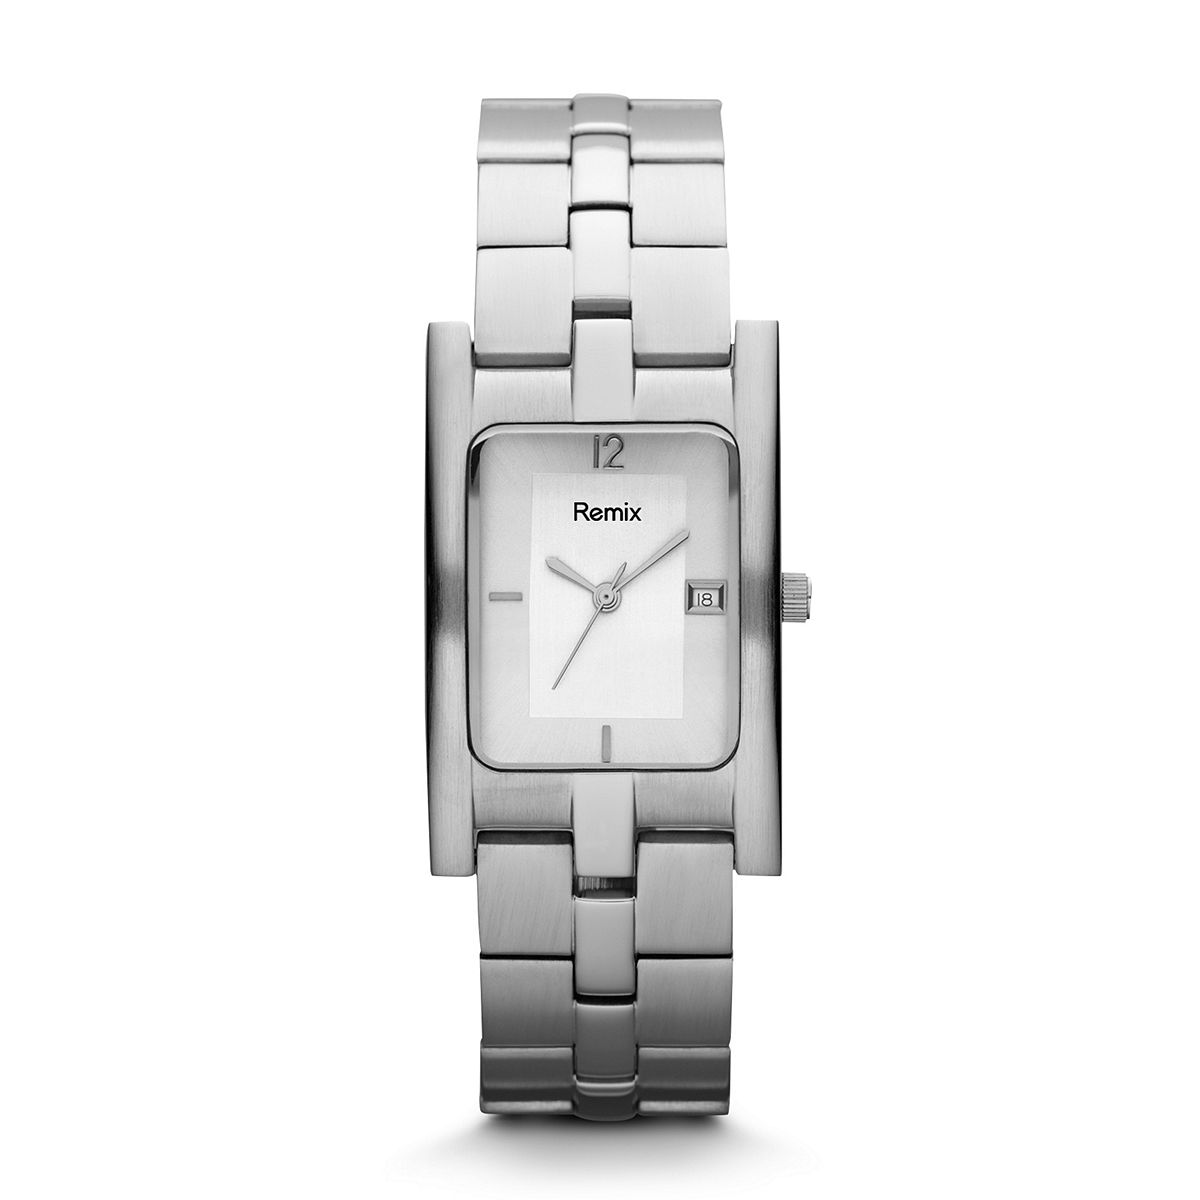 Dress Stainless Steel Watch For Men ??   / Promotional product f